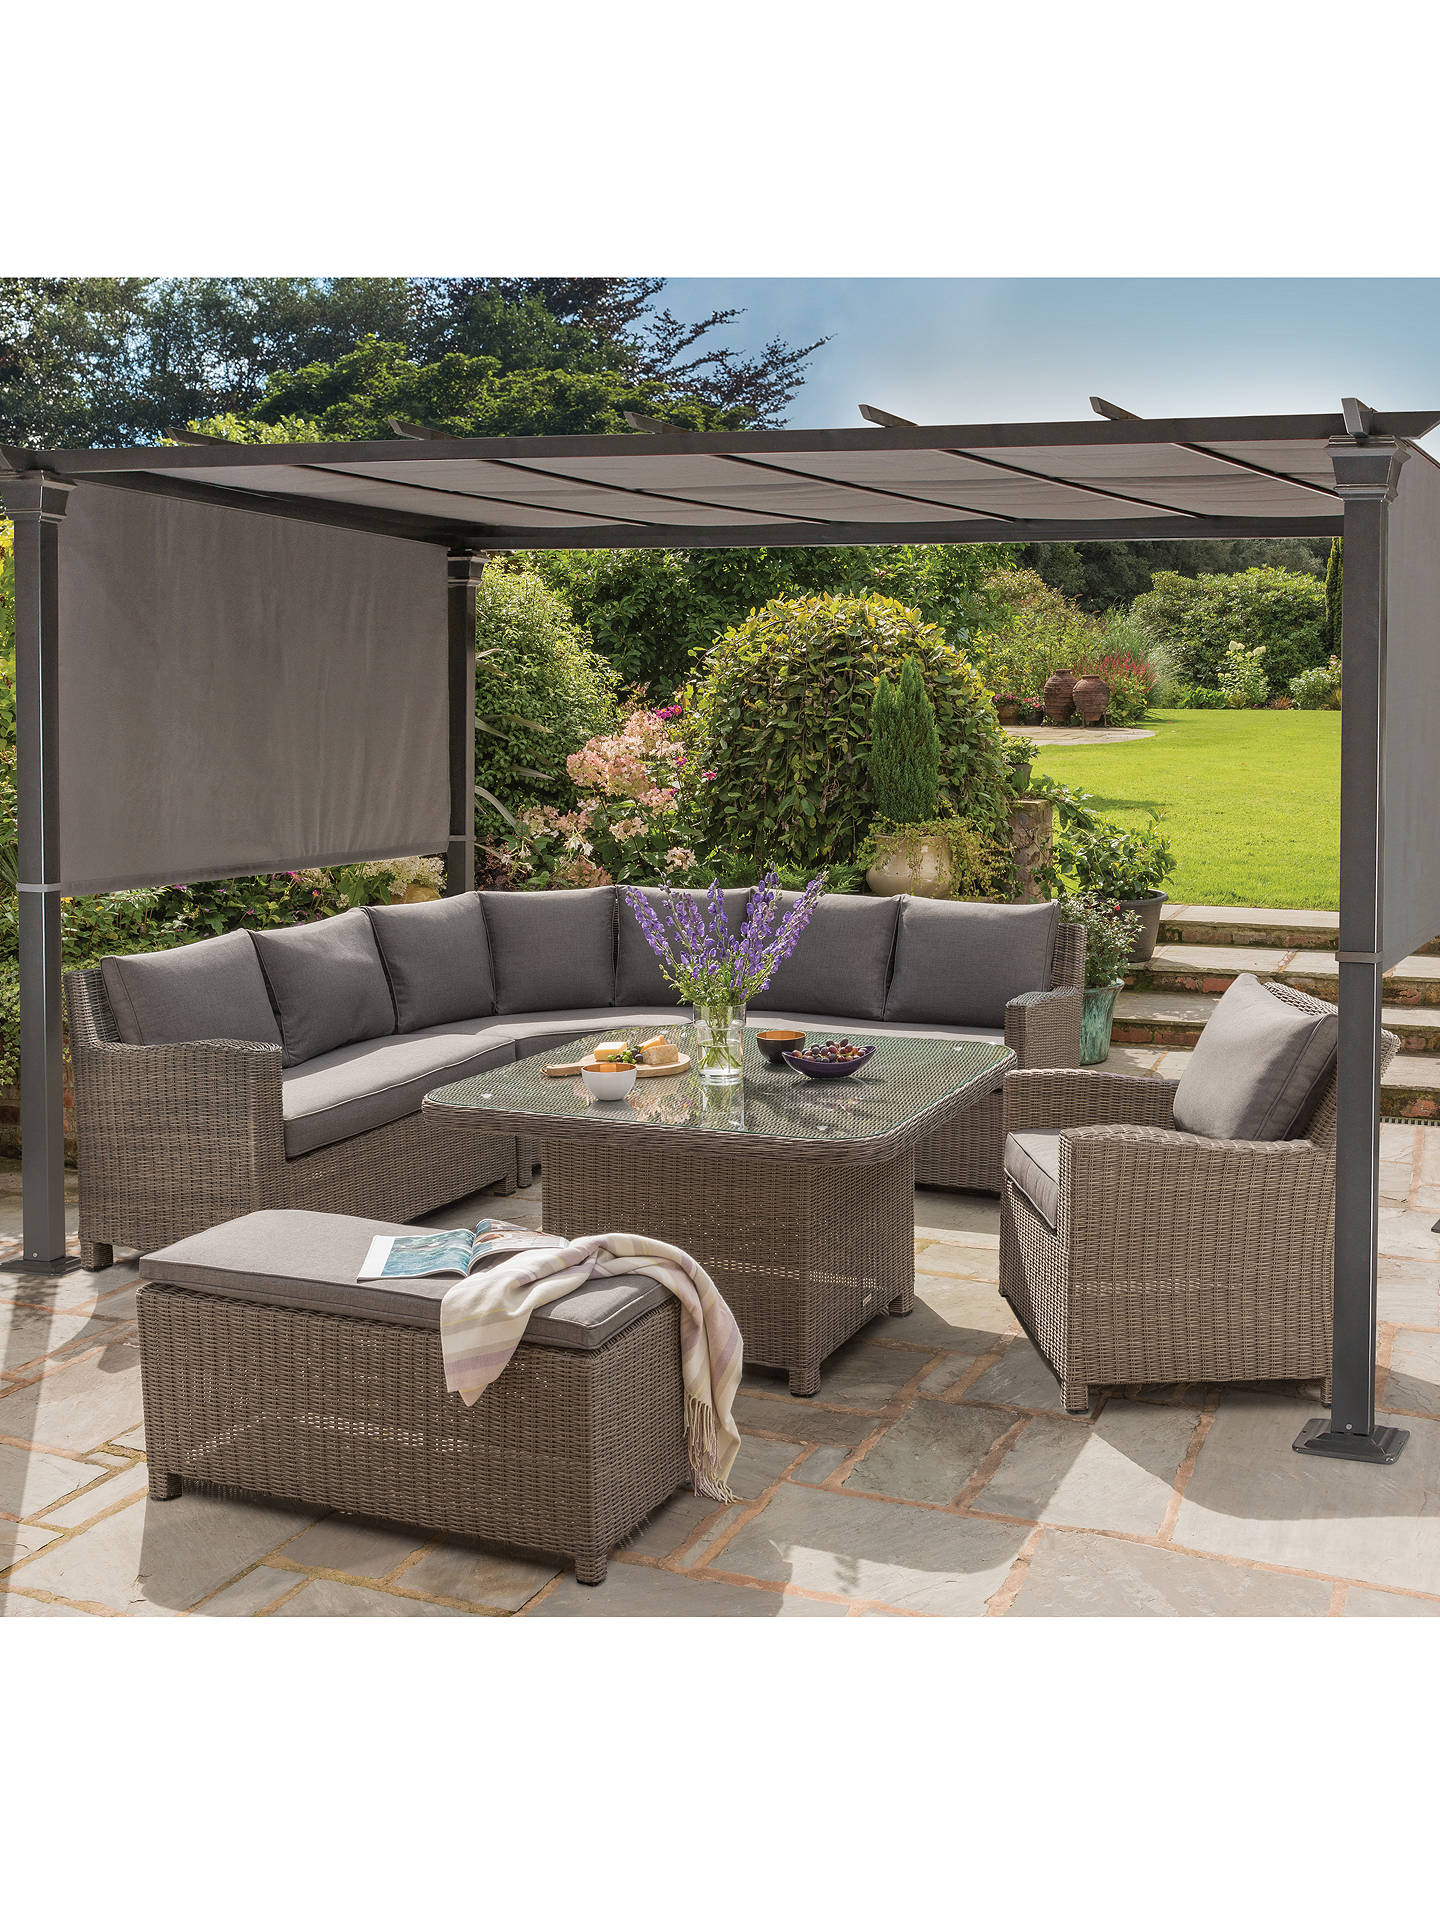 KETTLER Palma Grande 6-Seat Garden Corner Sofa and Table Set, Rattan